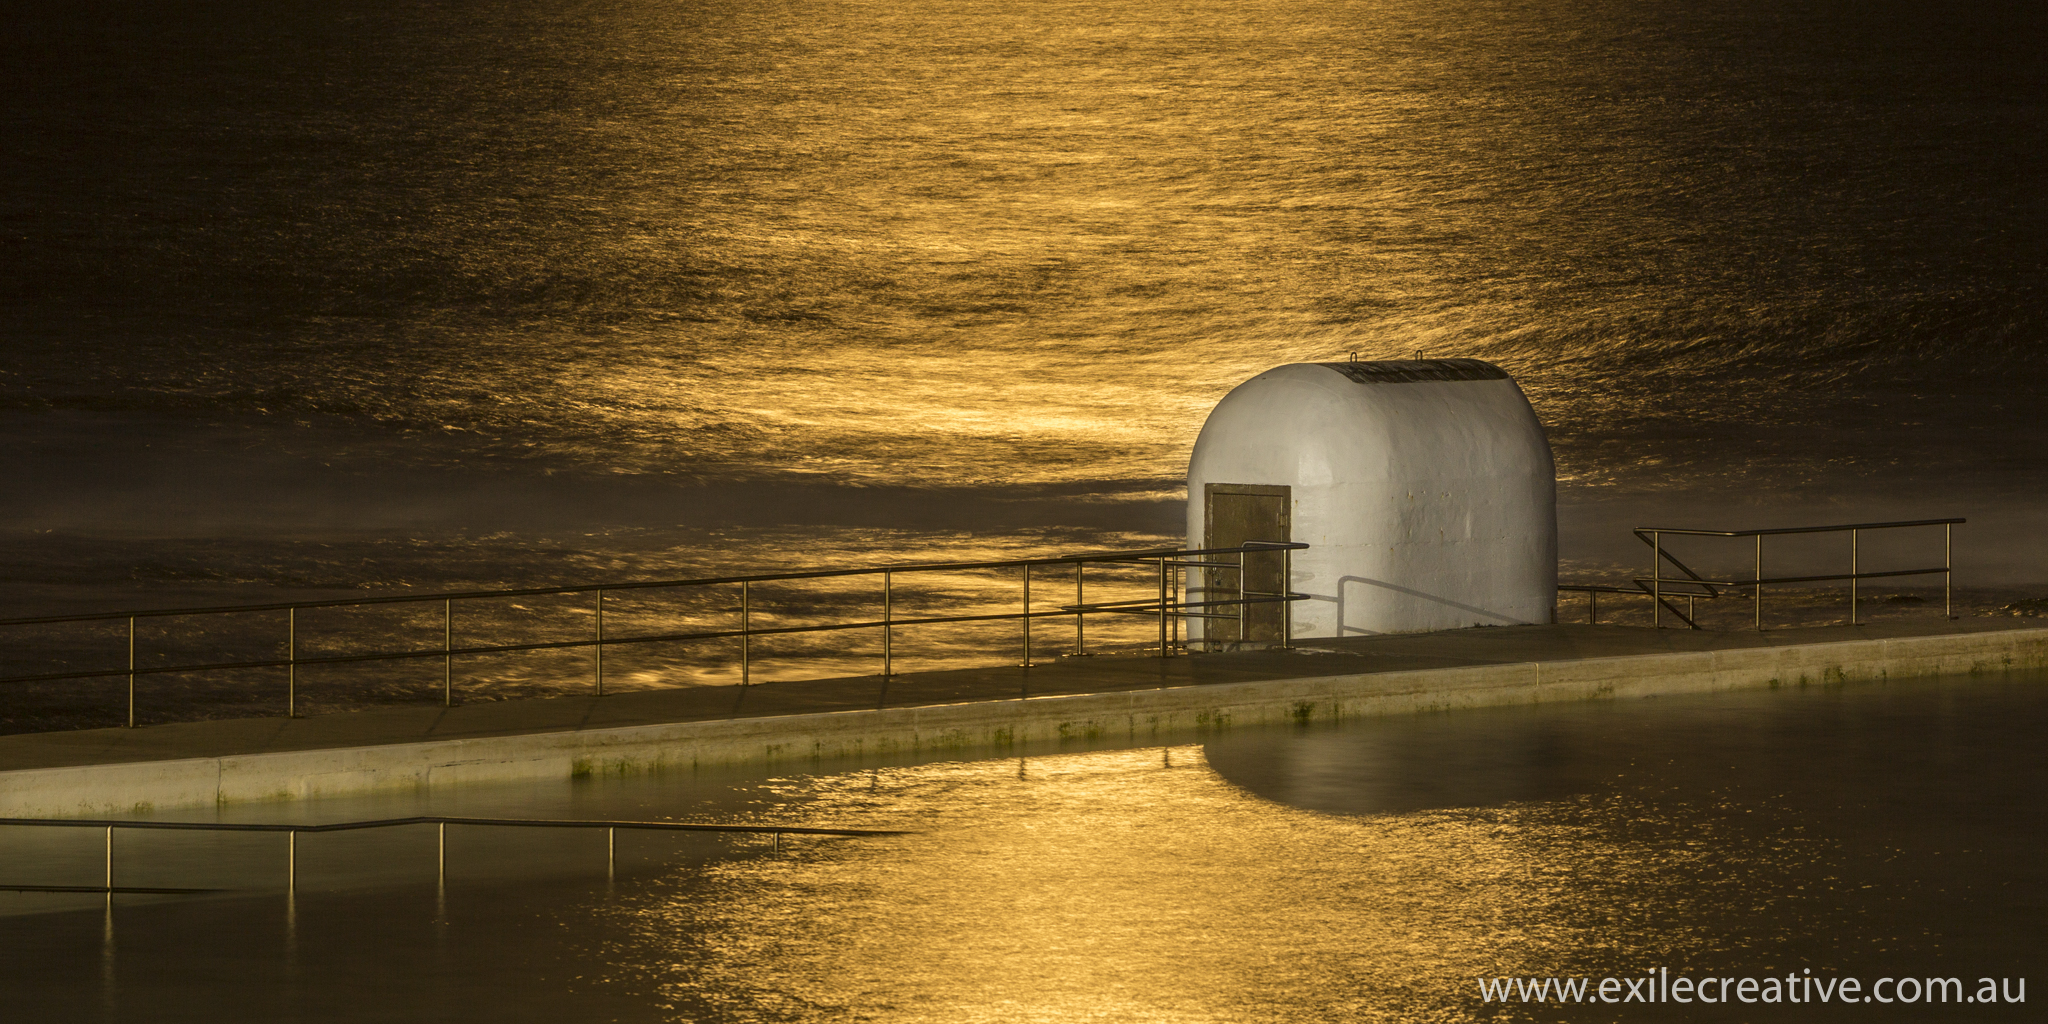 Merewether pump house bathed in the light of the full moon